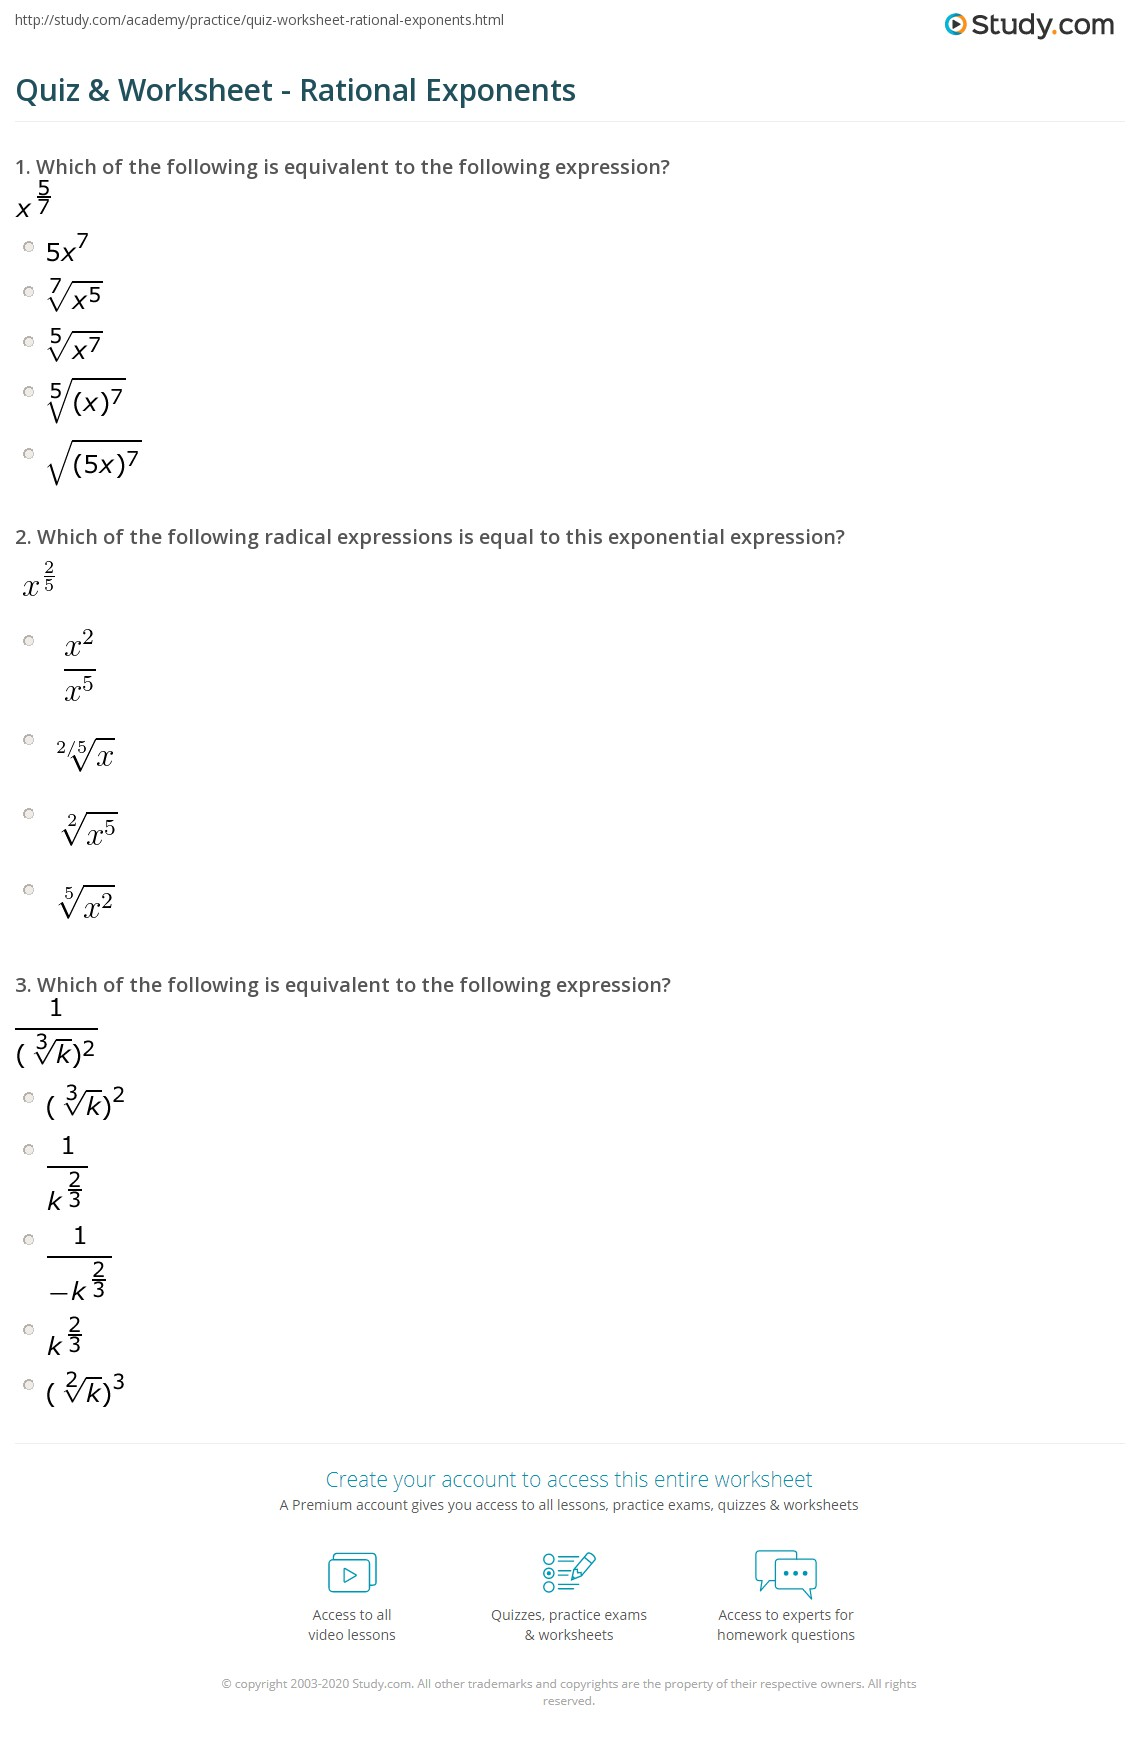 Quiz & Worksheet - Rational Exponents | Study.com